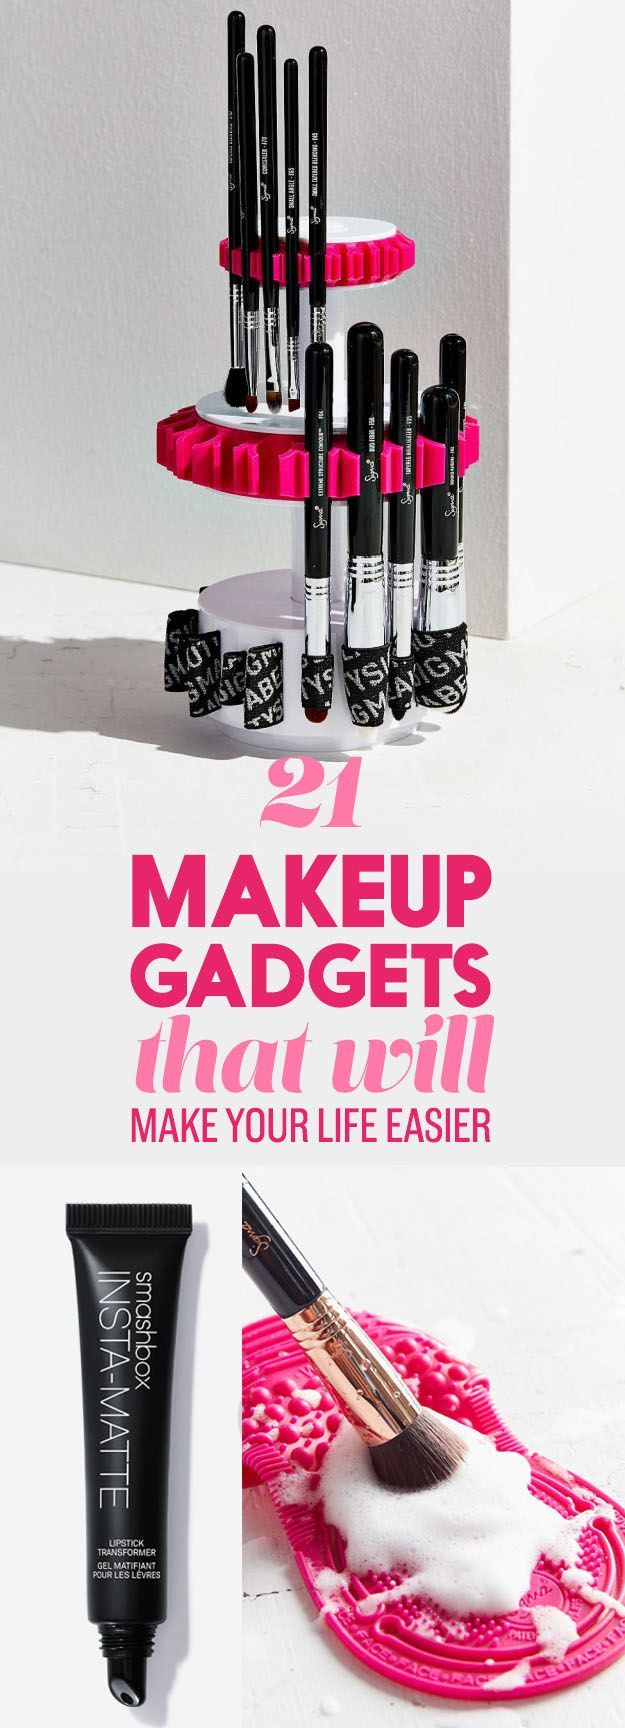 21 Makeup Gadgets That Will Actually Make Your Life Easier